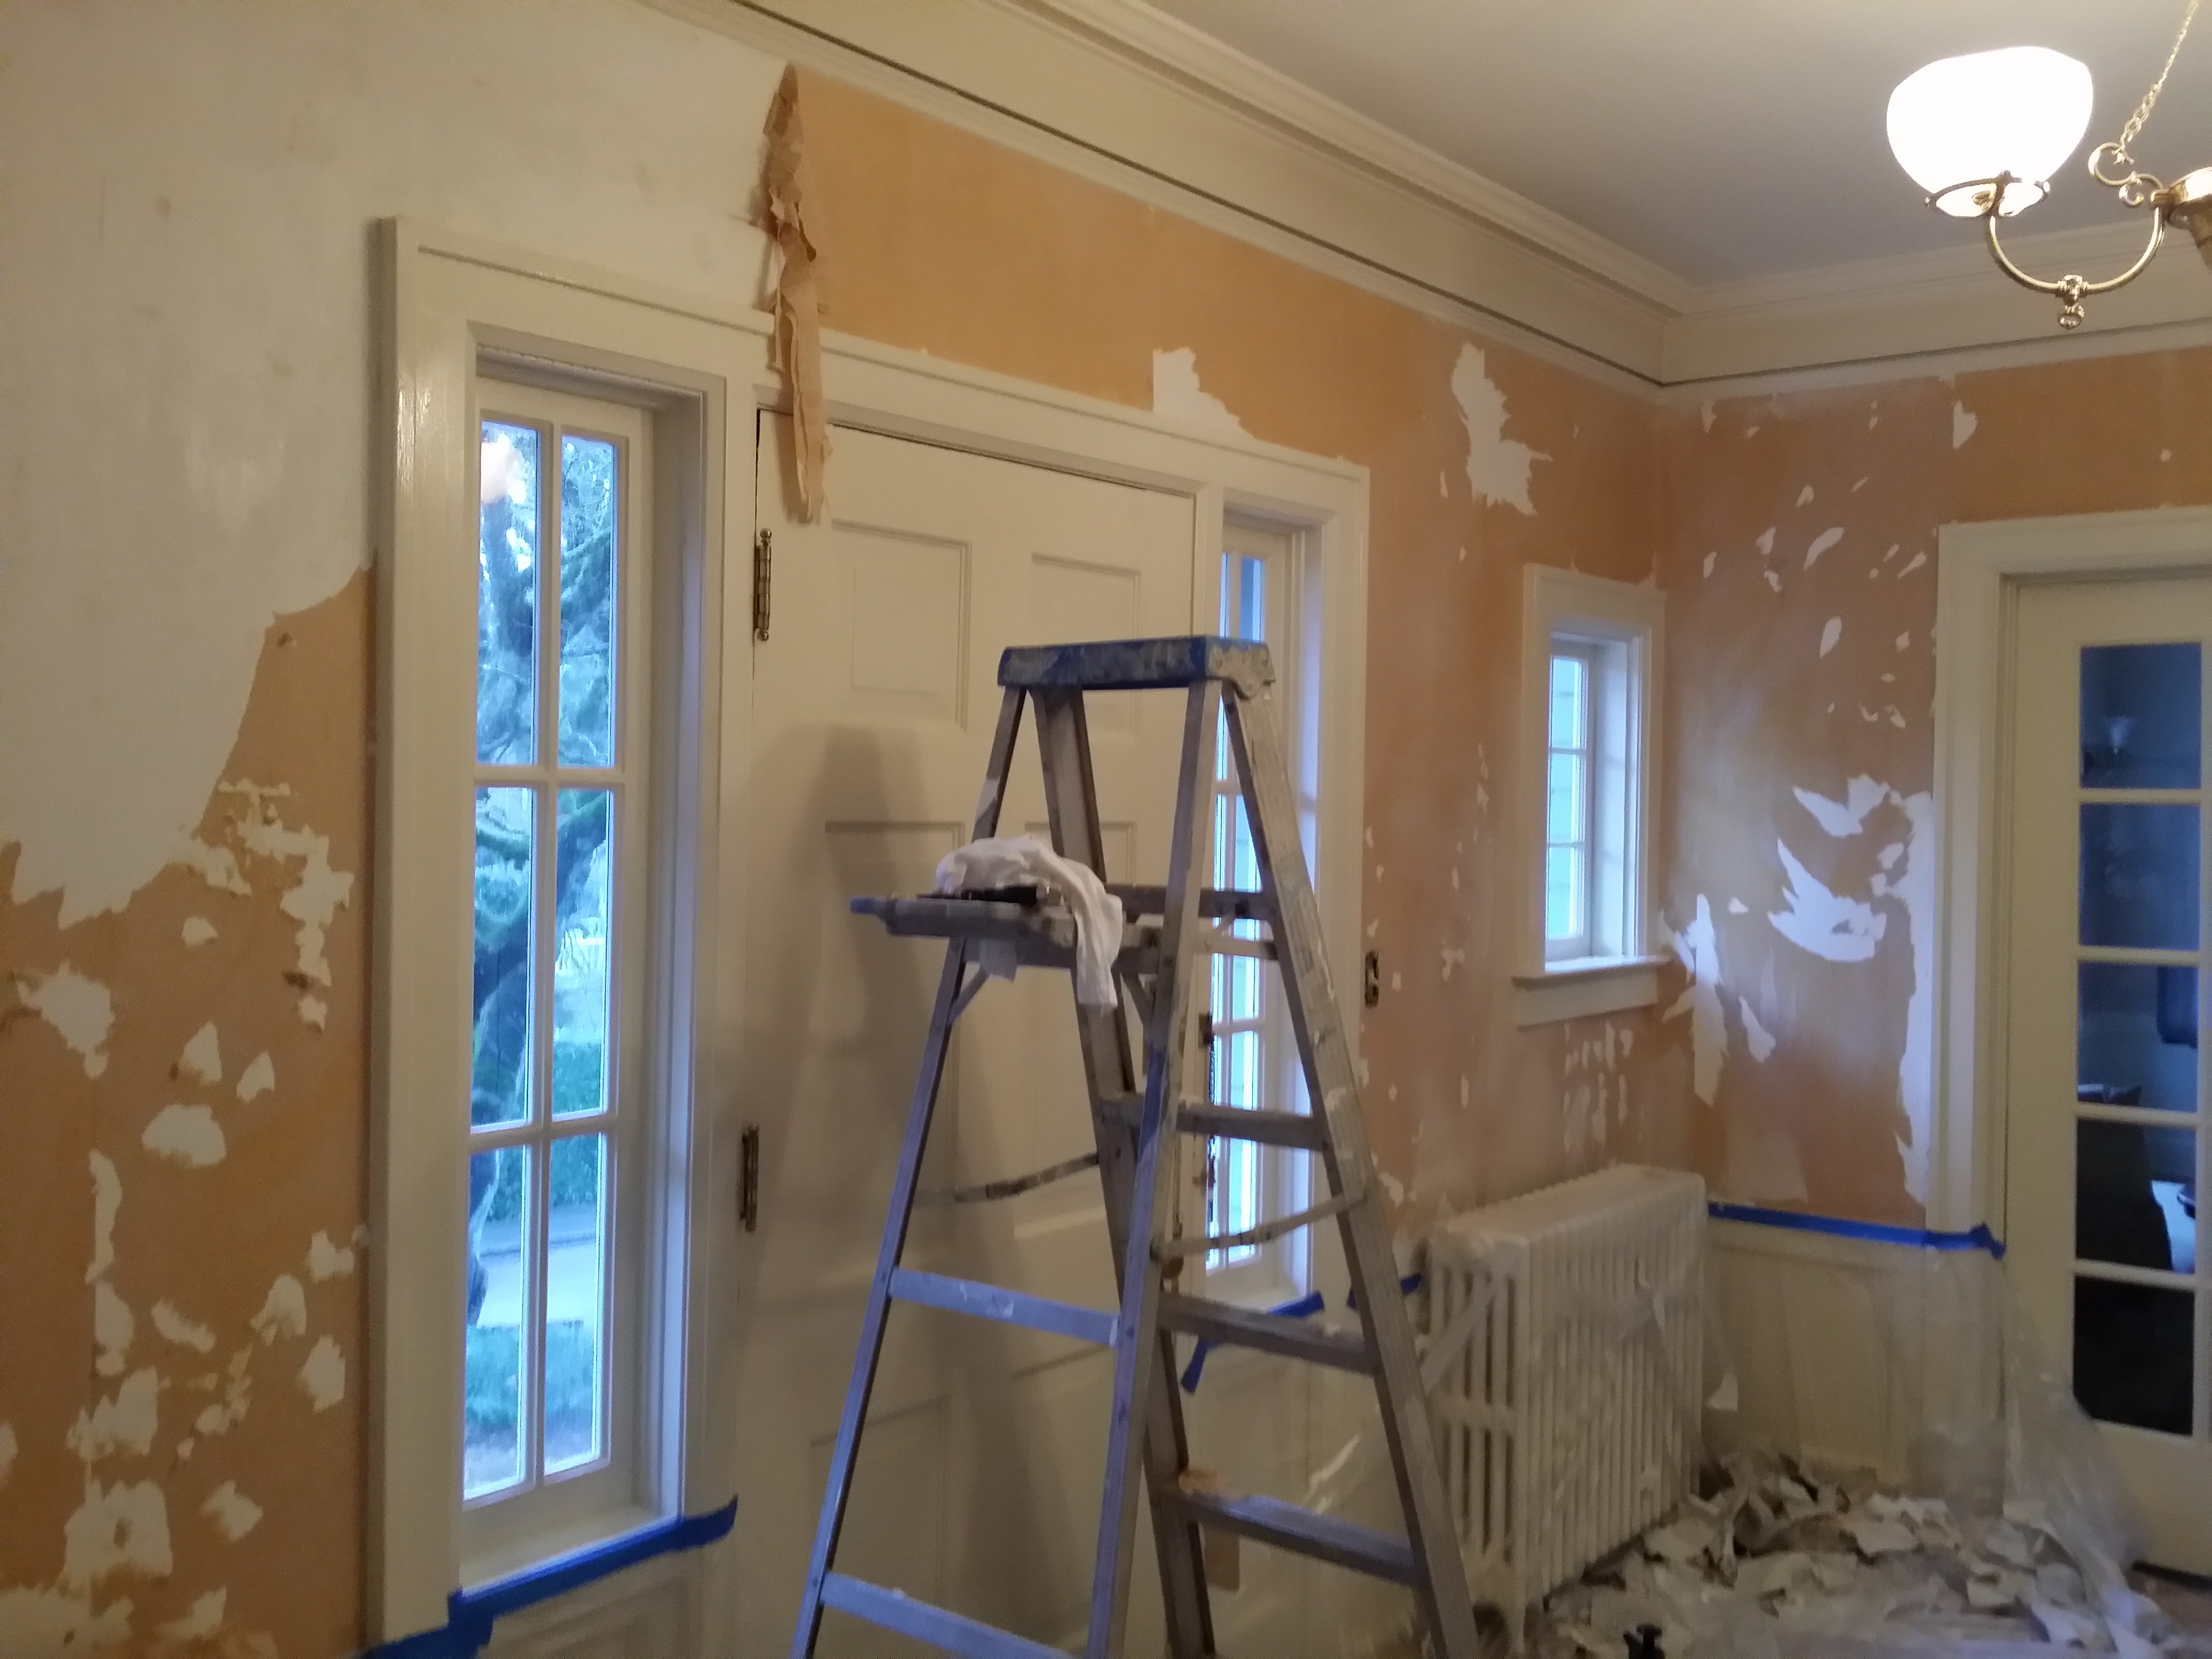 Wall Paper Removal wallpaper removal portland | painting contractors portland-house